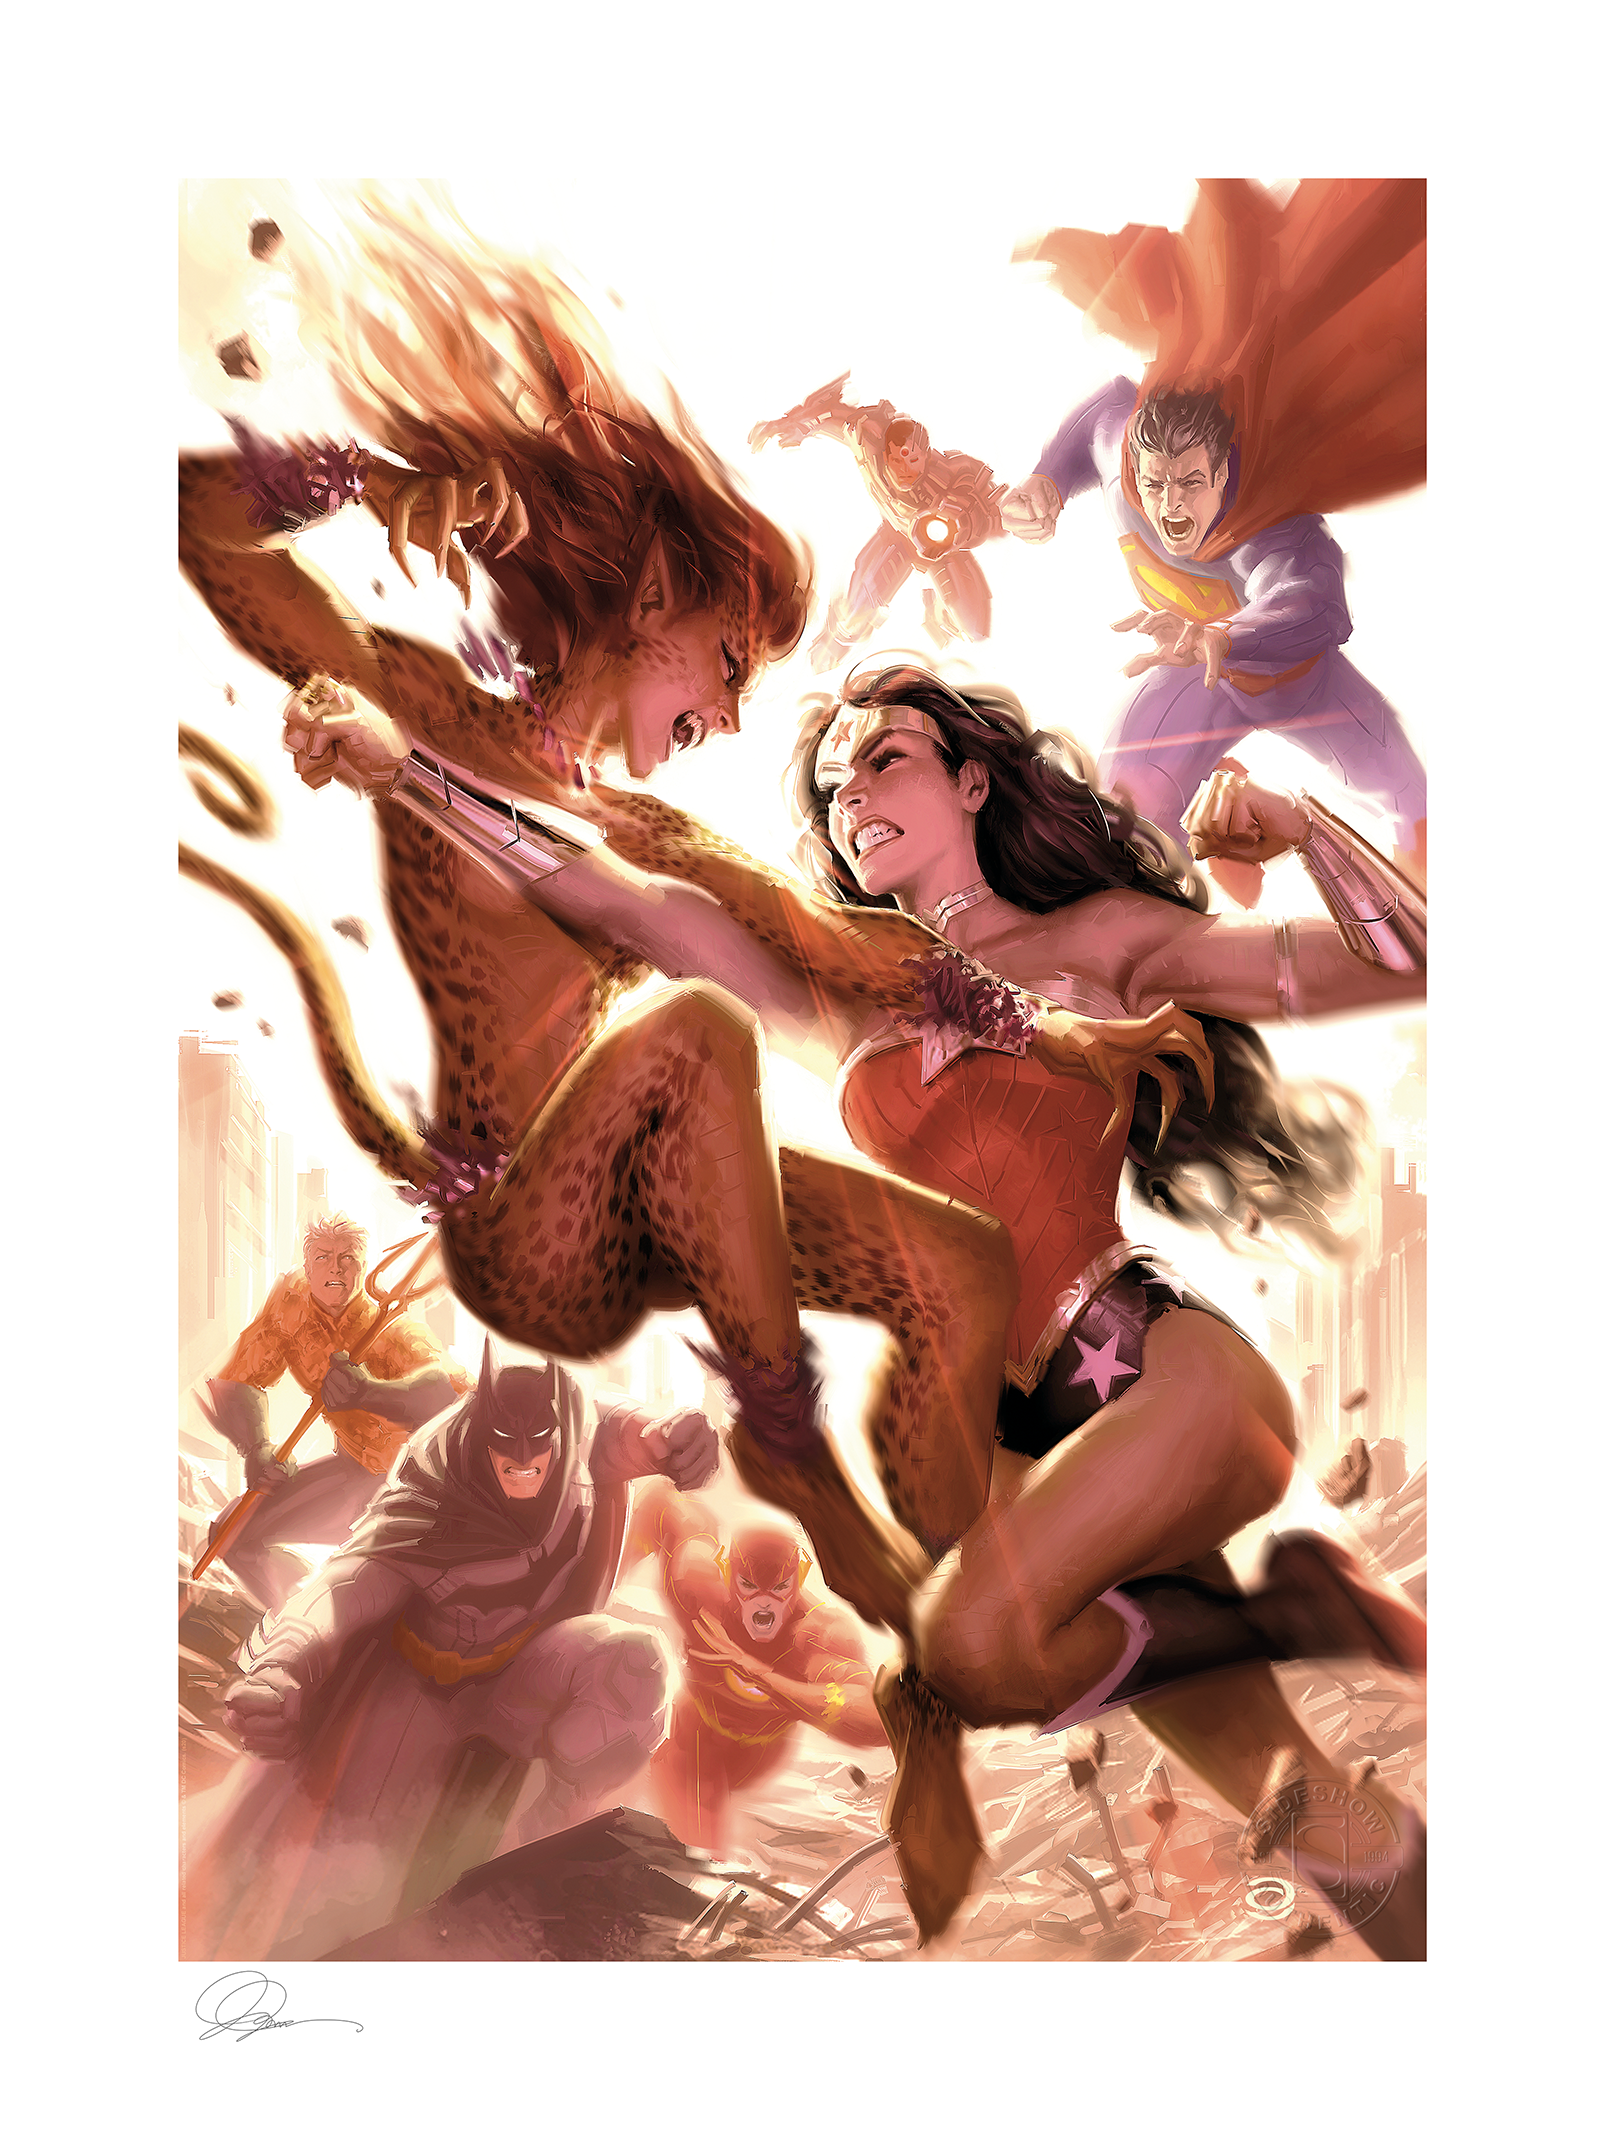 Sideshow Collectibles Justice League: Wonder Woman vs Cheetah Art Print